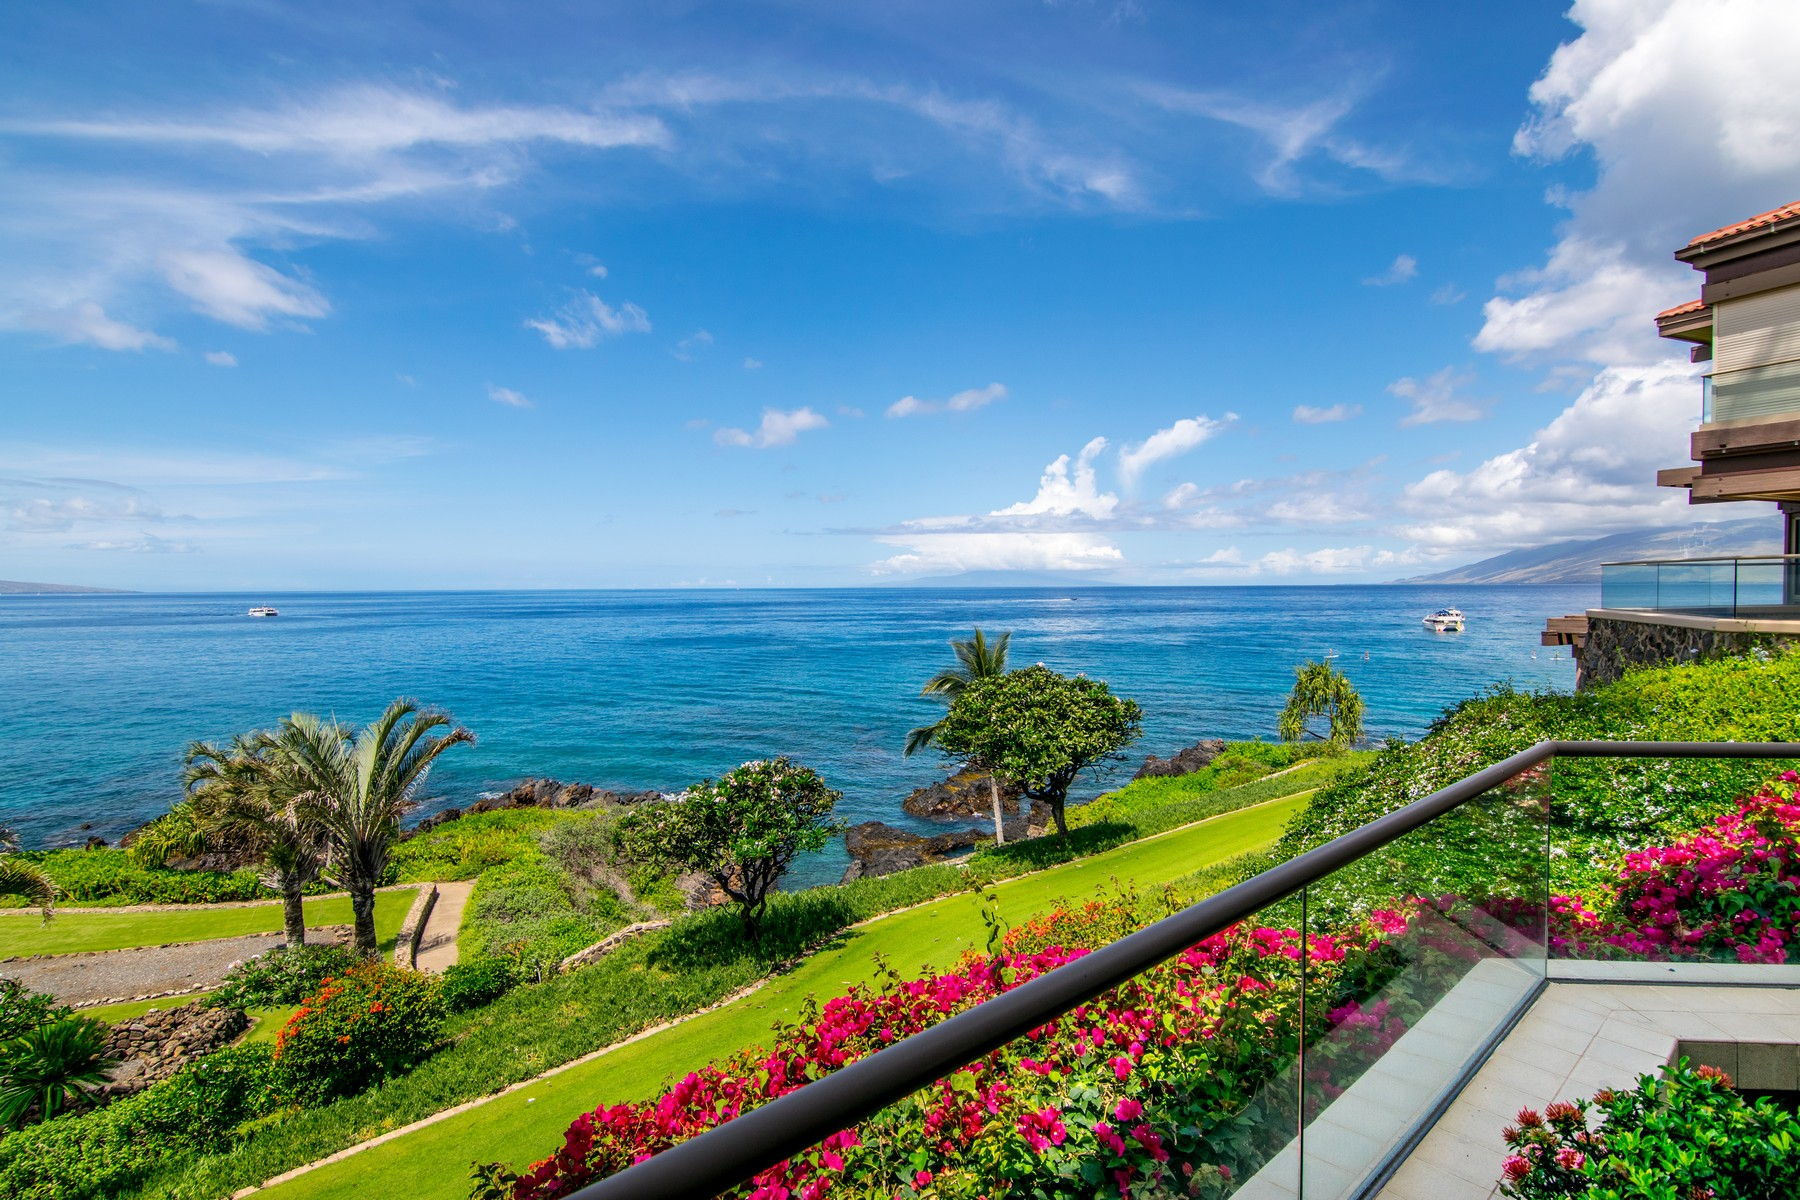 共管式独立产权公寓 为 销售 在 Wailea Point 1401_ The Premiere location within this prestigious community 4000 Wailea Alanui Dr Unit 1401 基黑, 夏威夷 96753 美国